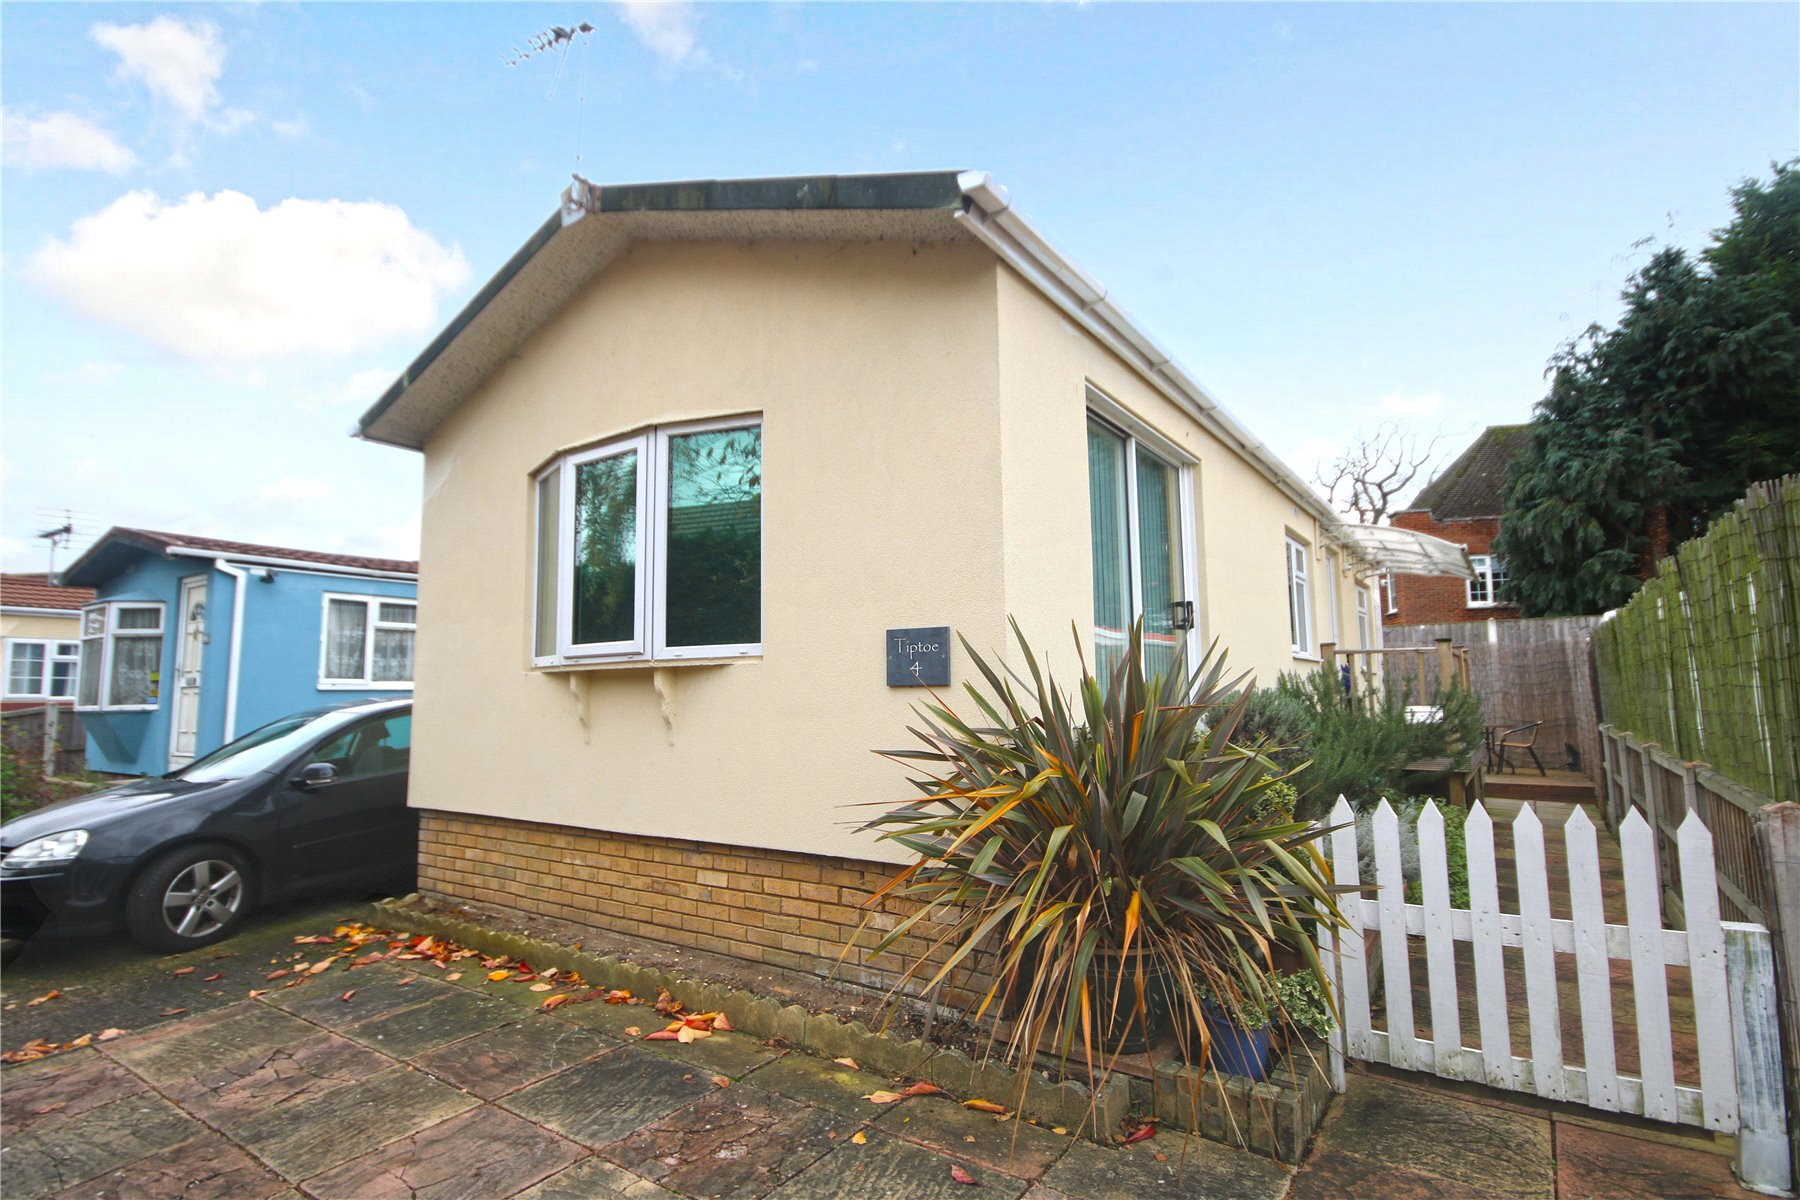 2 Bedrooms Mobile Home for sale in Manygate Park, Mitre Close, Shepperton, Surrey, TW17